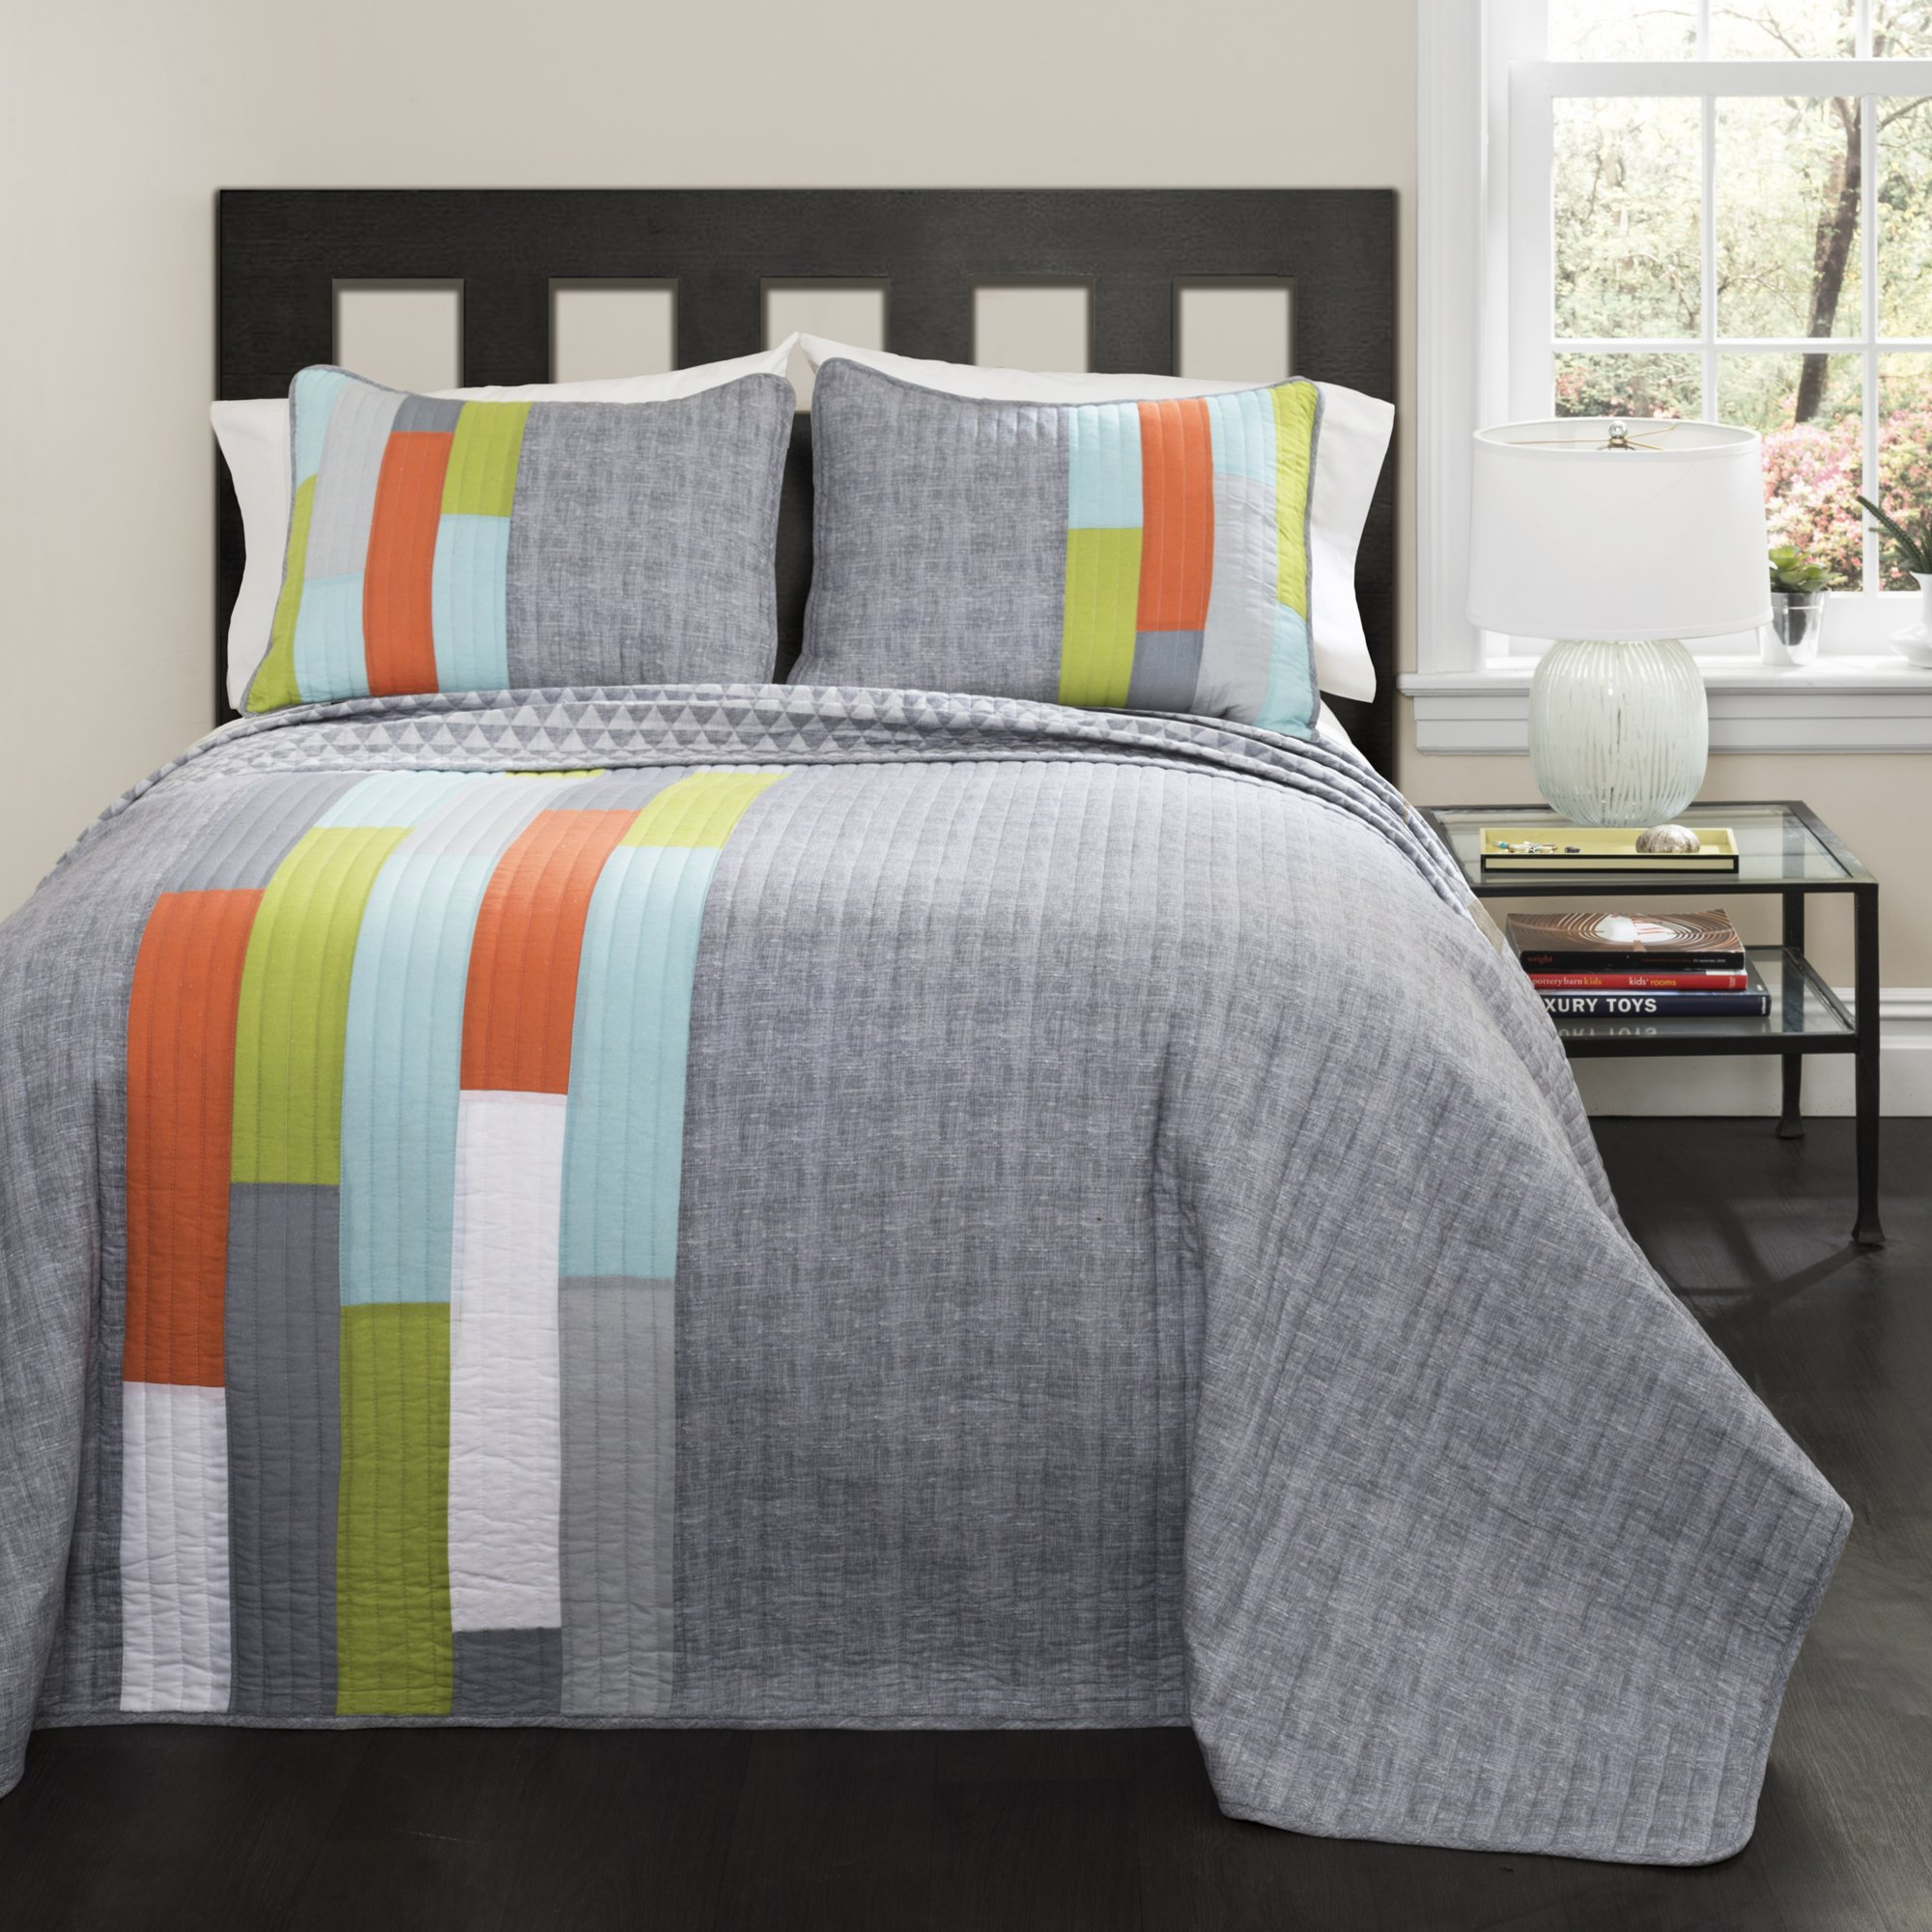 Lush Decor Lush Décor Shelly Stripe 2 Piece Quilt Set, Twin, Orange,